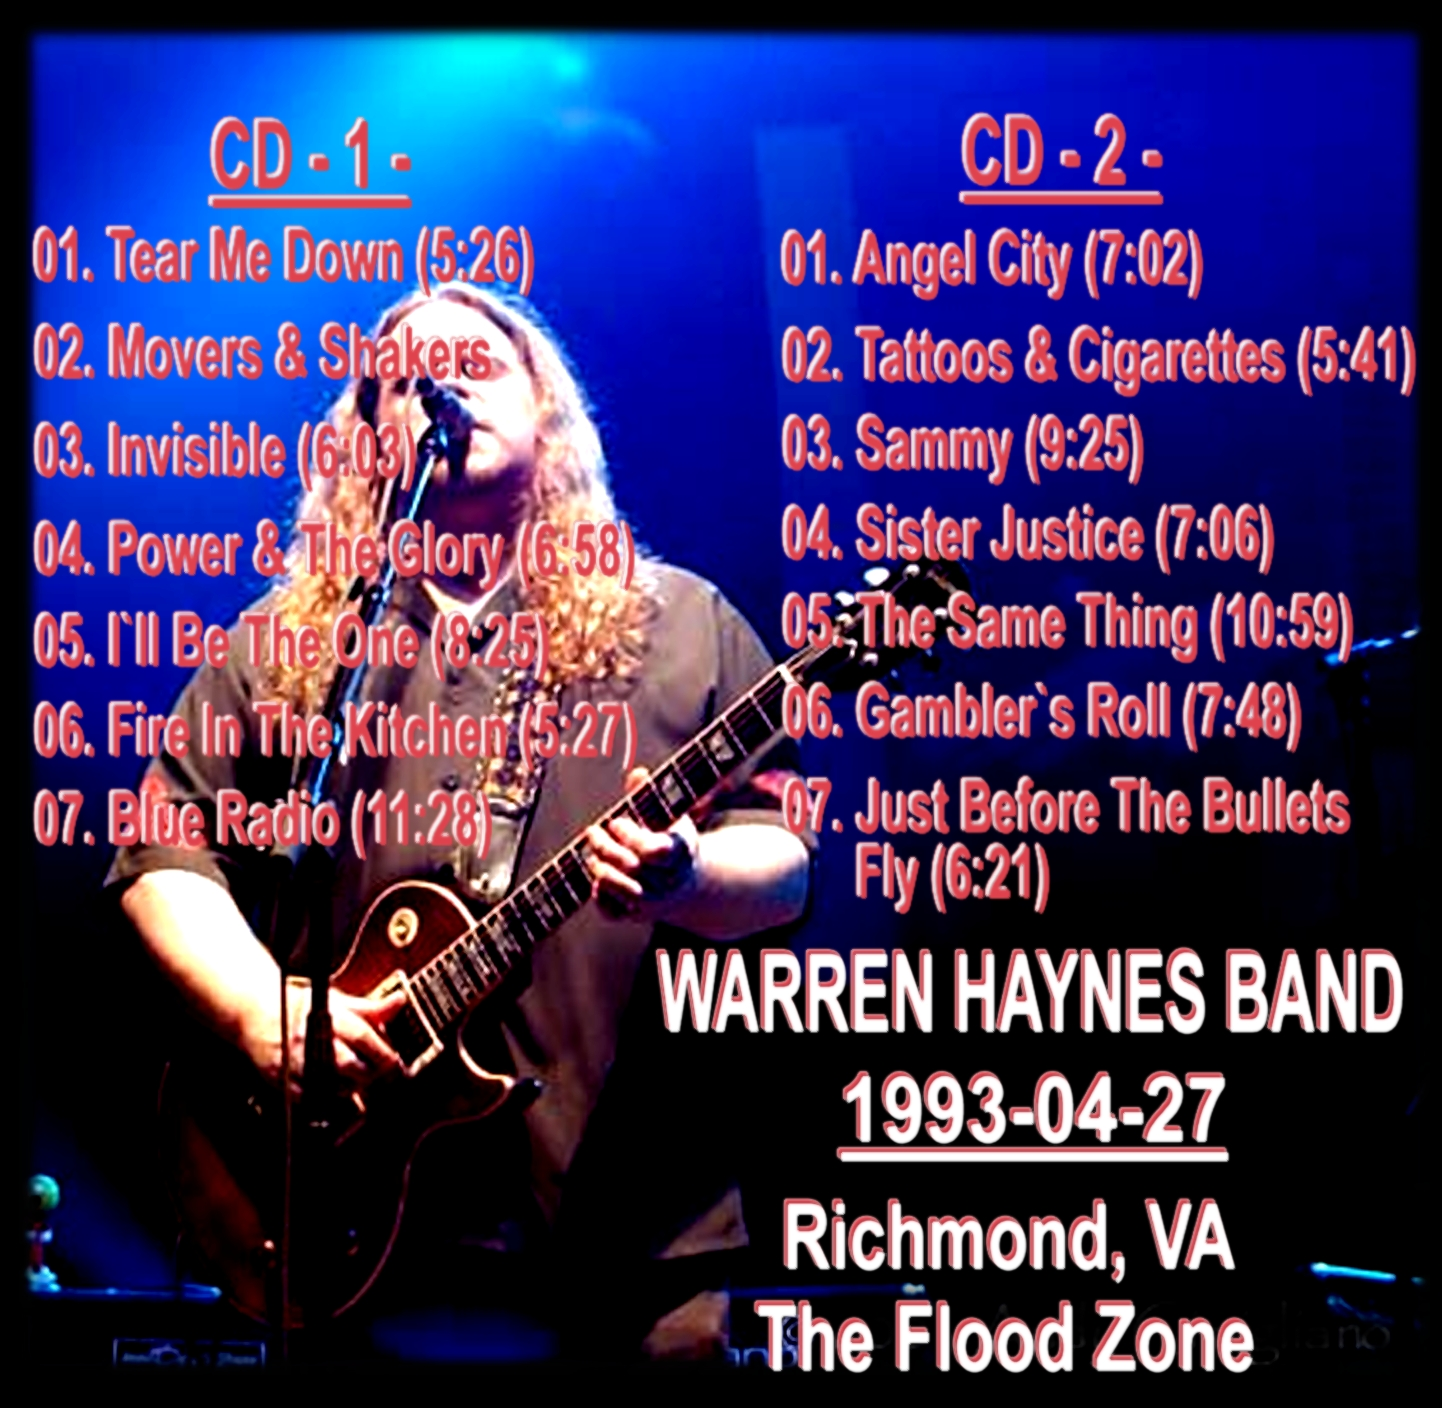 WarrenHaynesBand1993-04-27TheFloodZoneRichmondVA (7).jpg